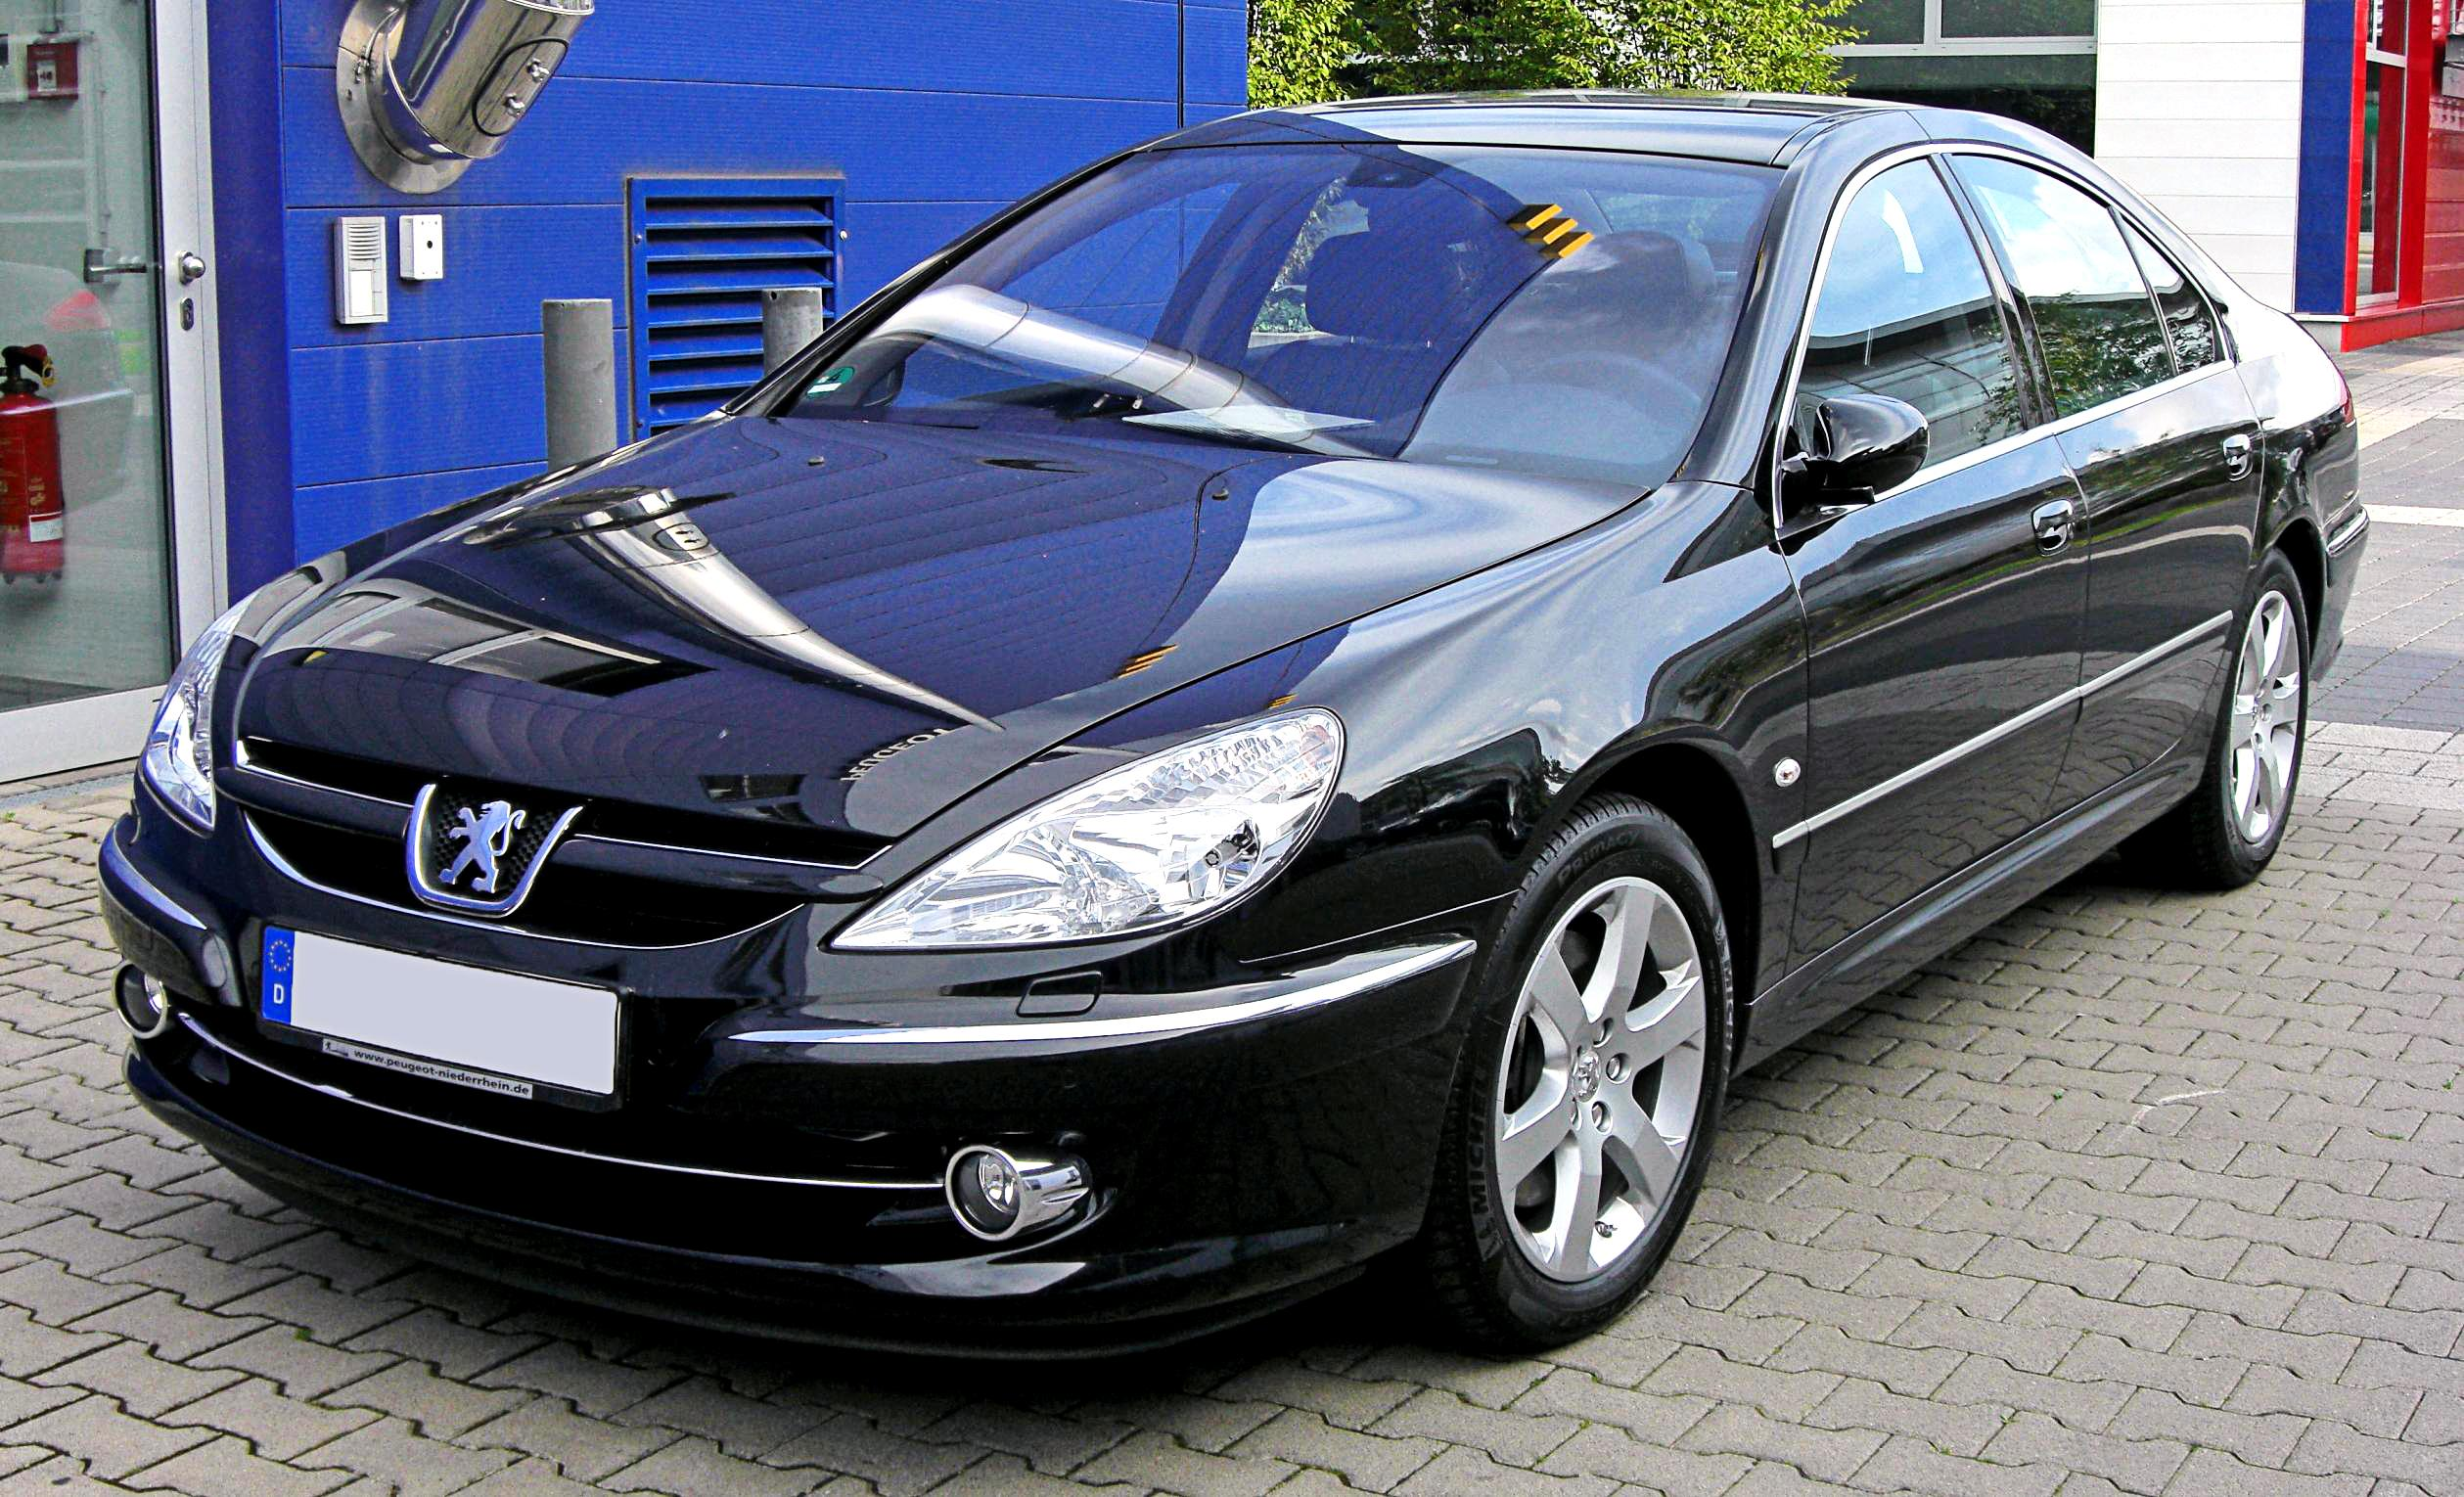 file peugeot 607 facelift 20090720 front jpg wikimedia. Black Bedroom Furniture Sets. Home Design Ideas